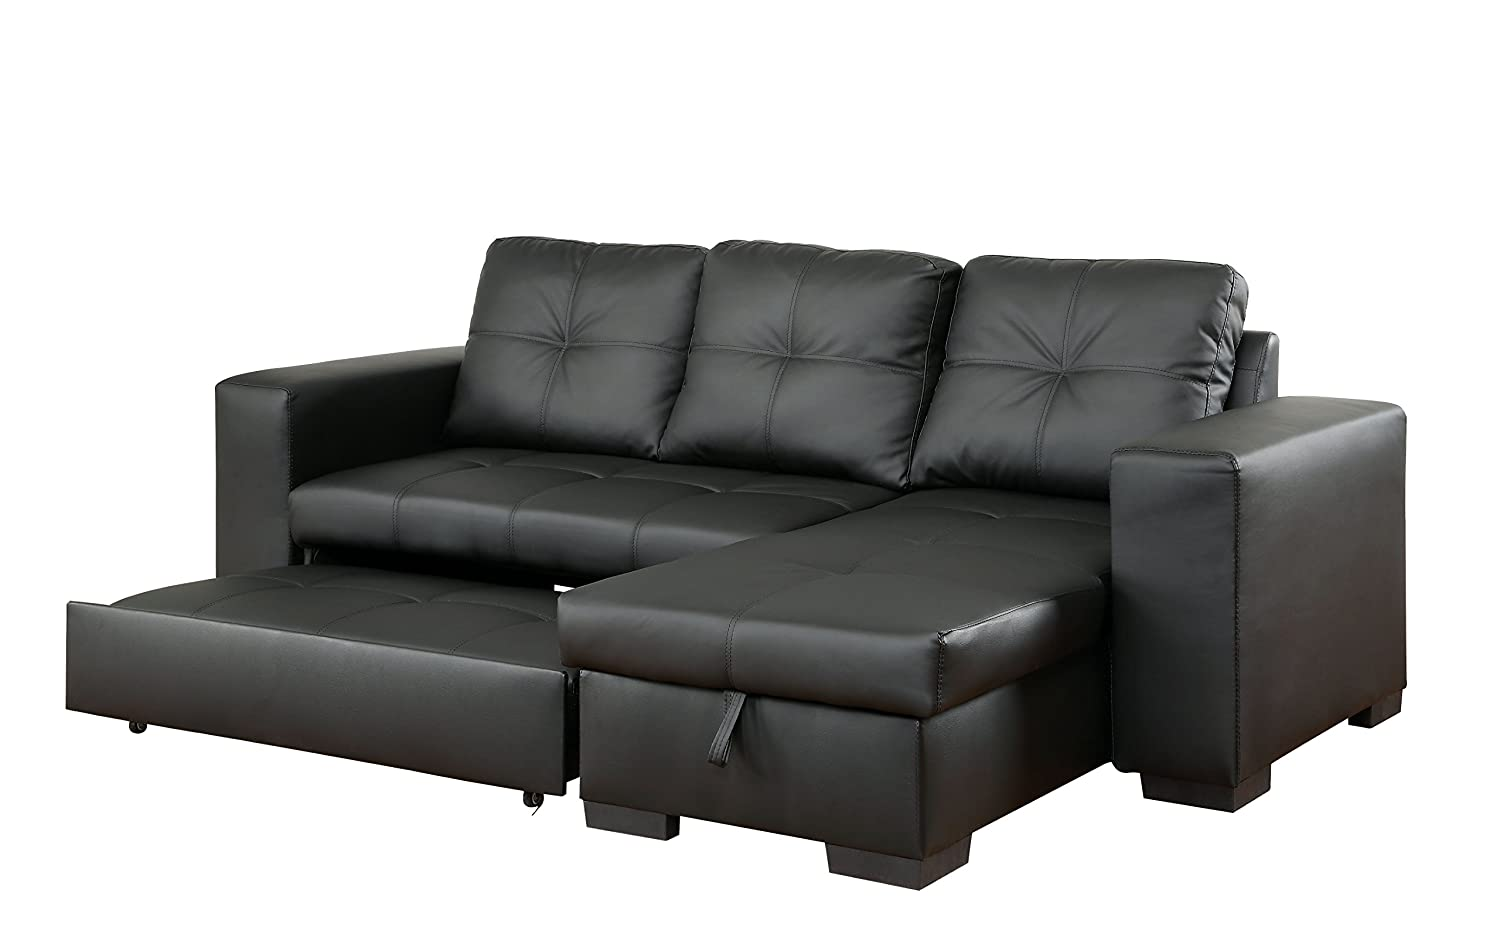 Outstanding Furniture Of America Charlton Contemporary Corner Sectional With Pull Out Sleeper Black Machost Co Dining Chair Design Ideas Machostcouk